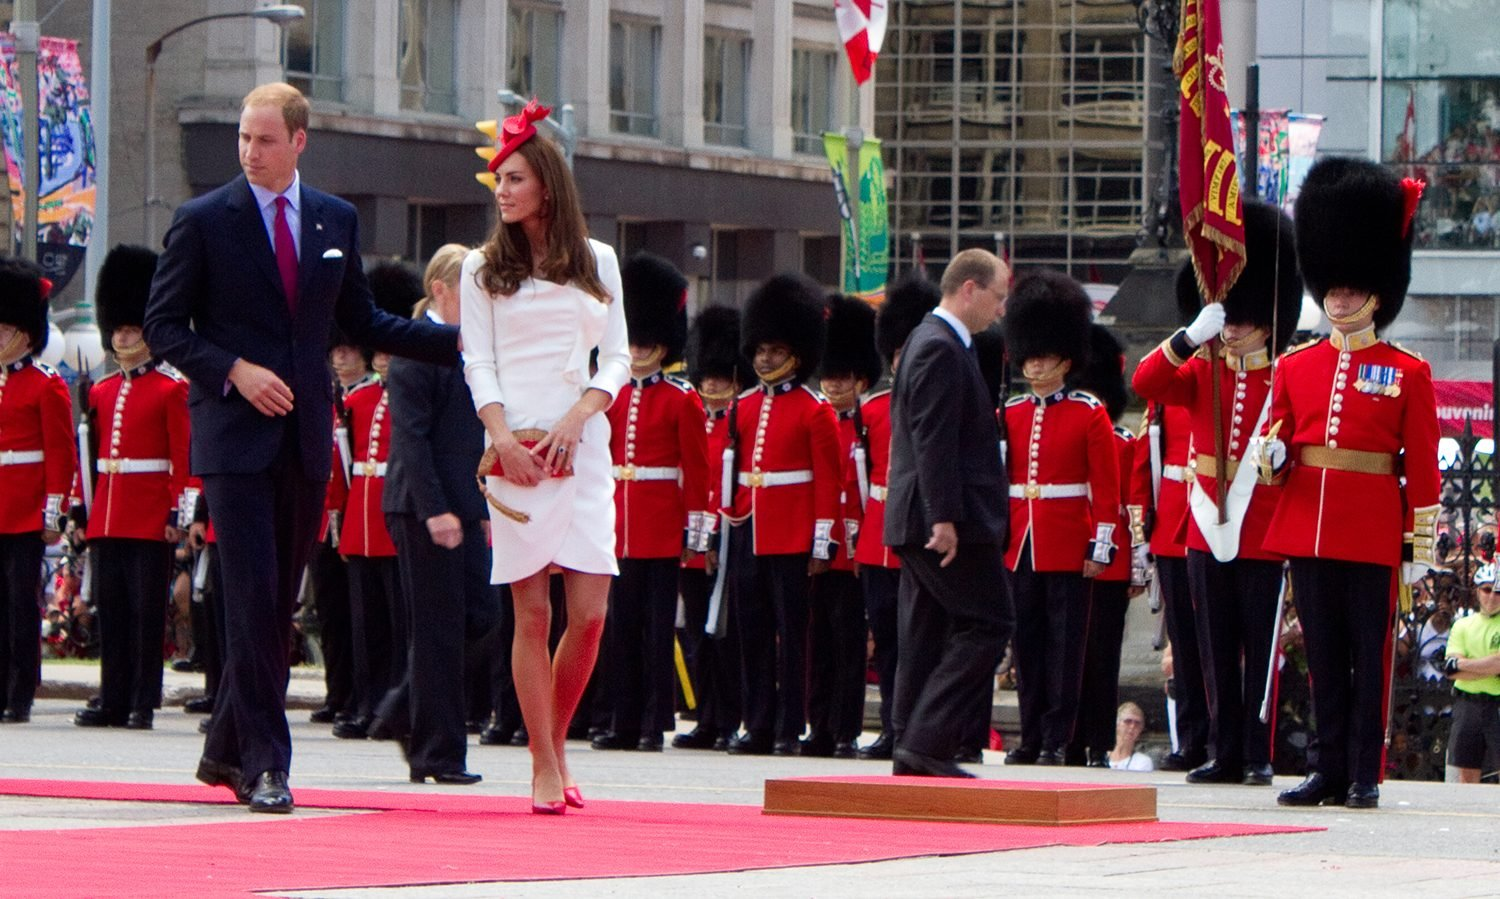 Royal tours of Canada - William and Kate in Canada in 2011